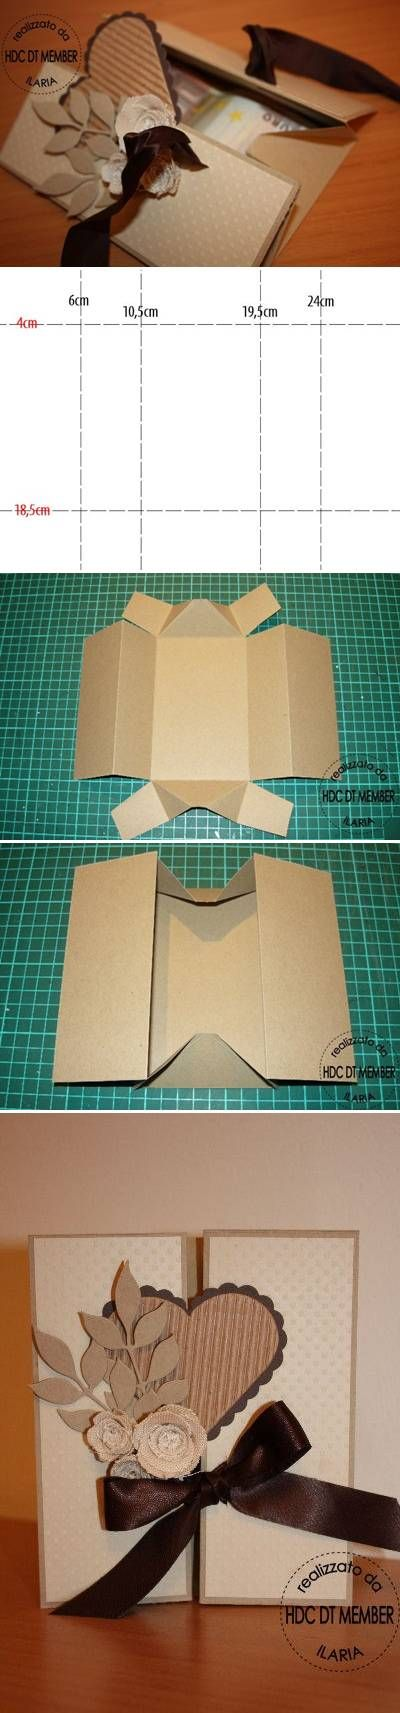 "<input type=""hidden"" value="""" data-frizzlyPostContainer="""" data-frizzlyPostUrl=""http://www.usefuldiy.com/diy-beautiful-envelope/"" data-frizzlyPostTitle=""DIY Beautiful Envelope"" data-frizzlyHoverContainer=""""><p>>>> Craft Tutorials More Free Instructions Free Tutorials More Craft Tutorials</p>"